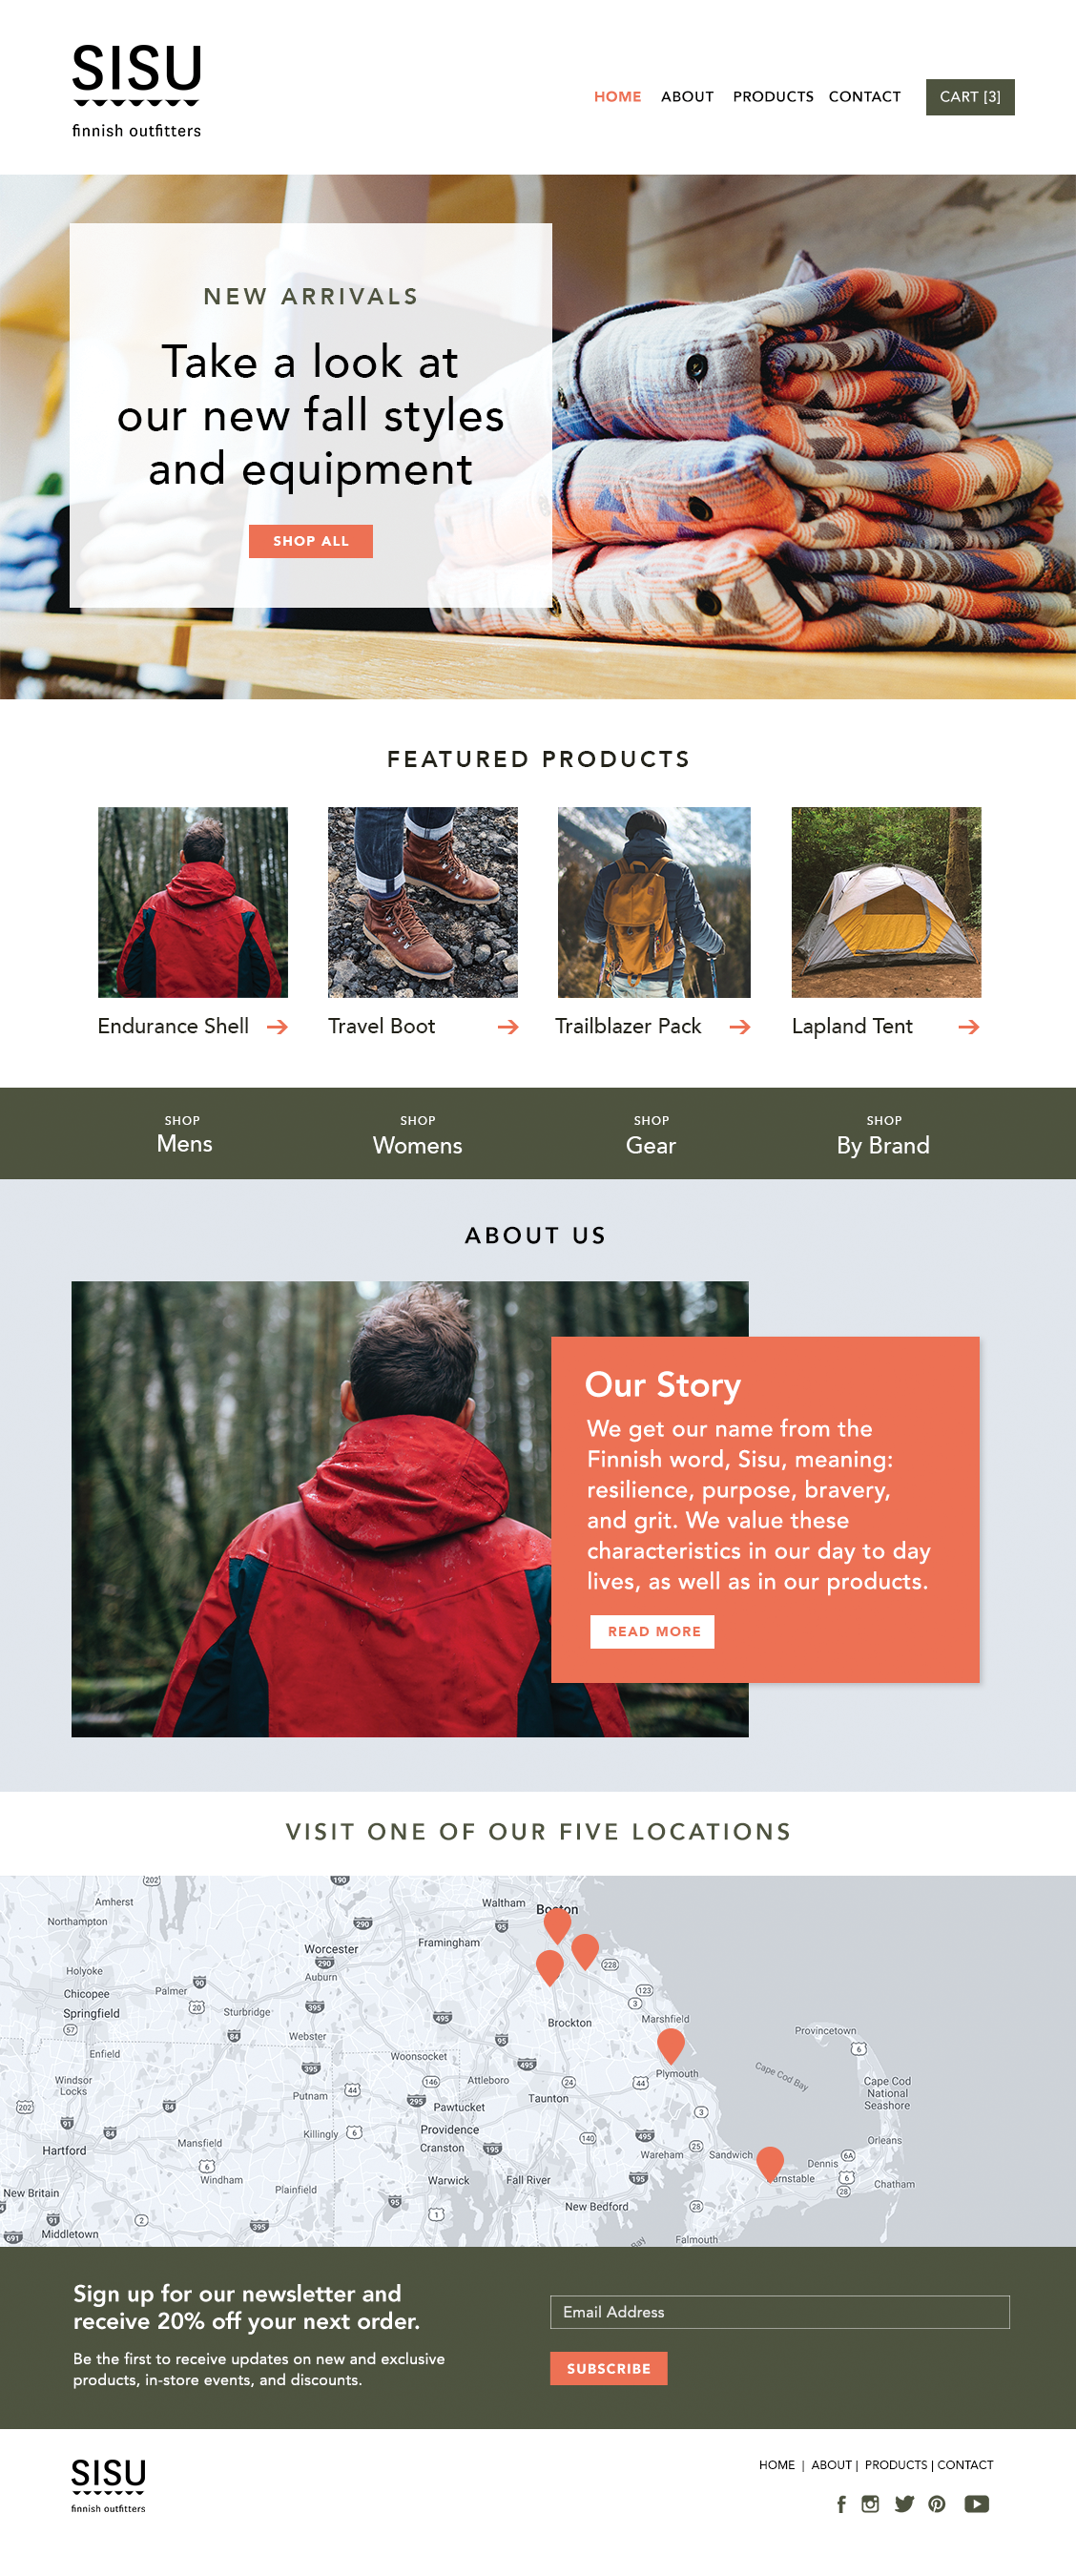 ecommerce web design tips - #5 - great lifestyle and product images